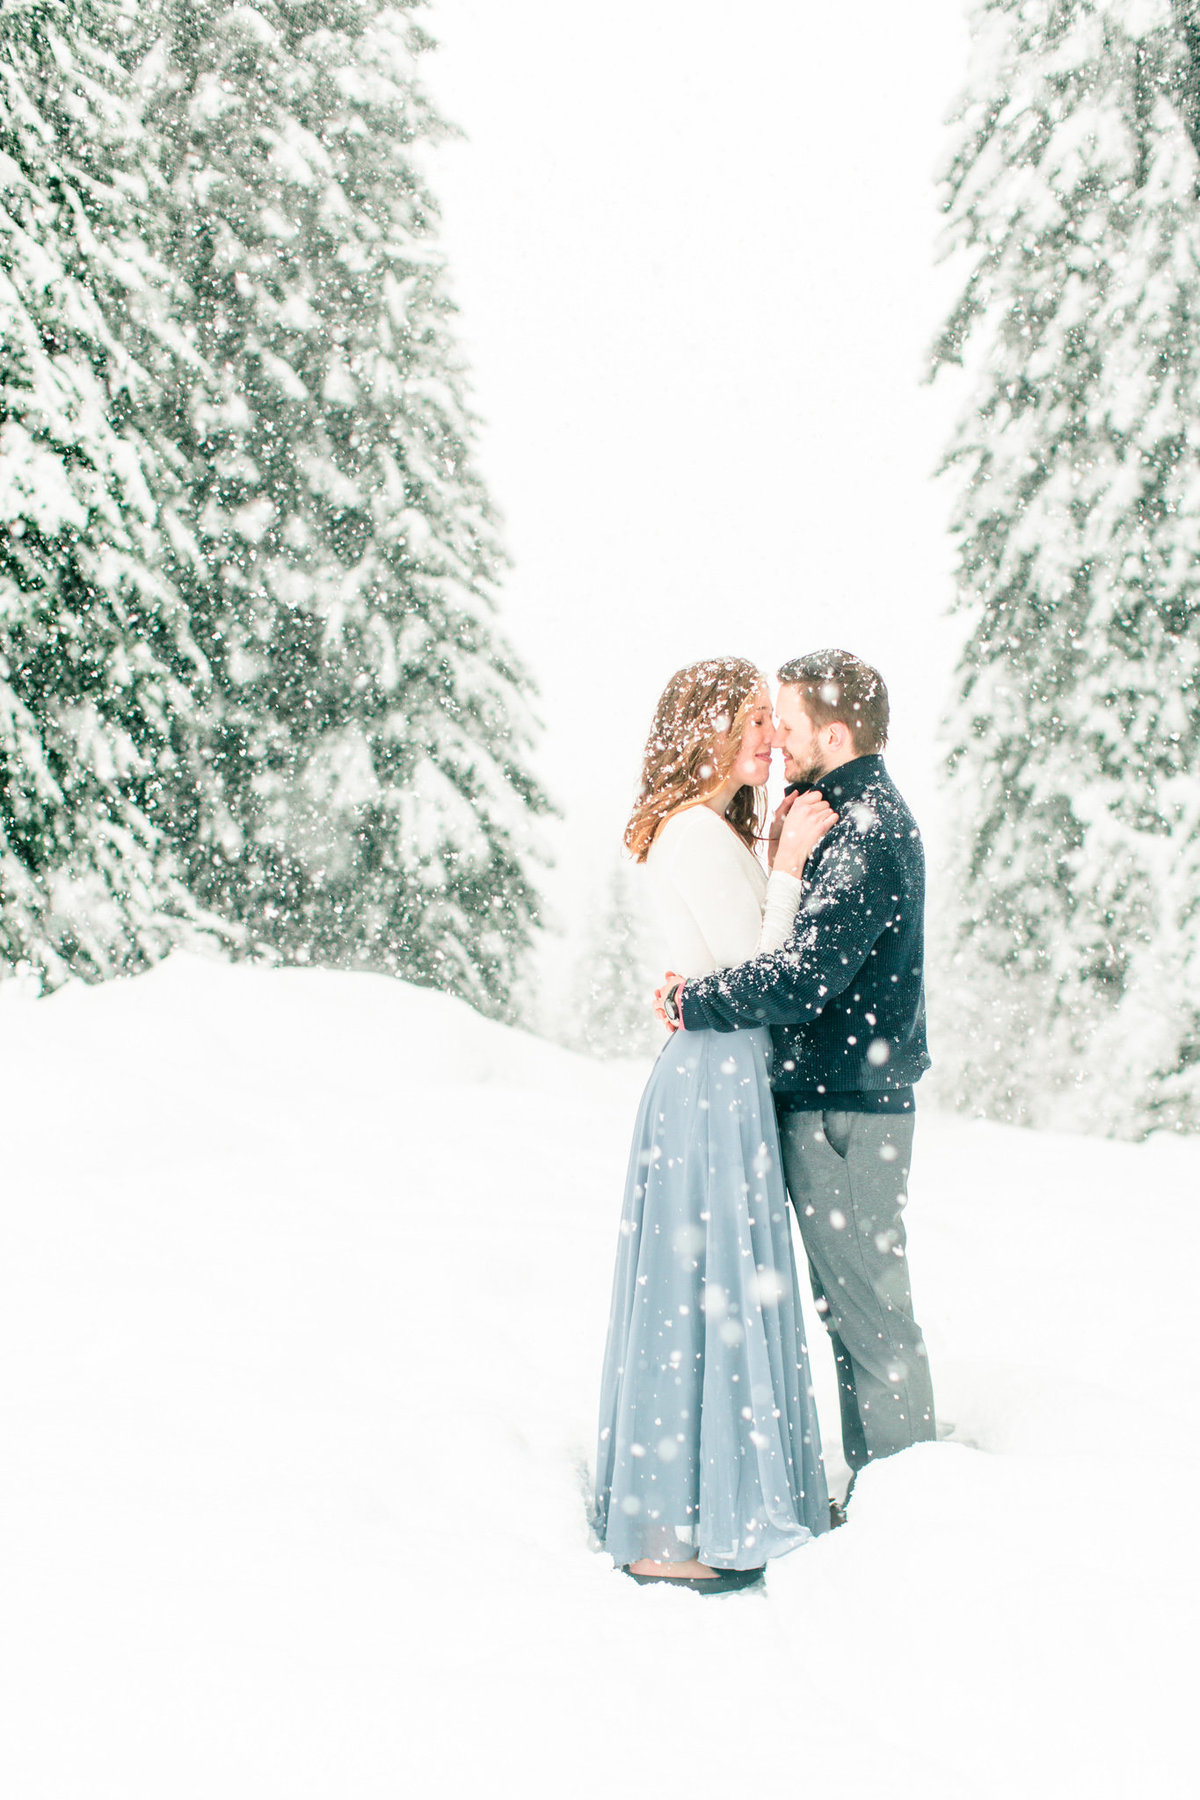 Snoqualmie Engagement Session-Alexa and James Tia LaRue Photography_0053